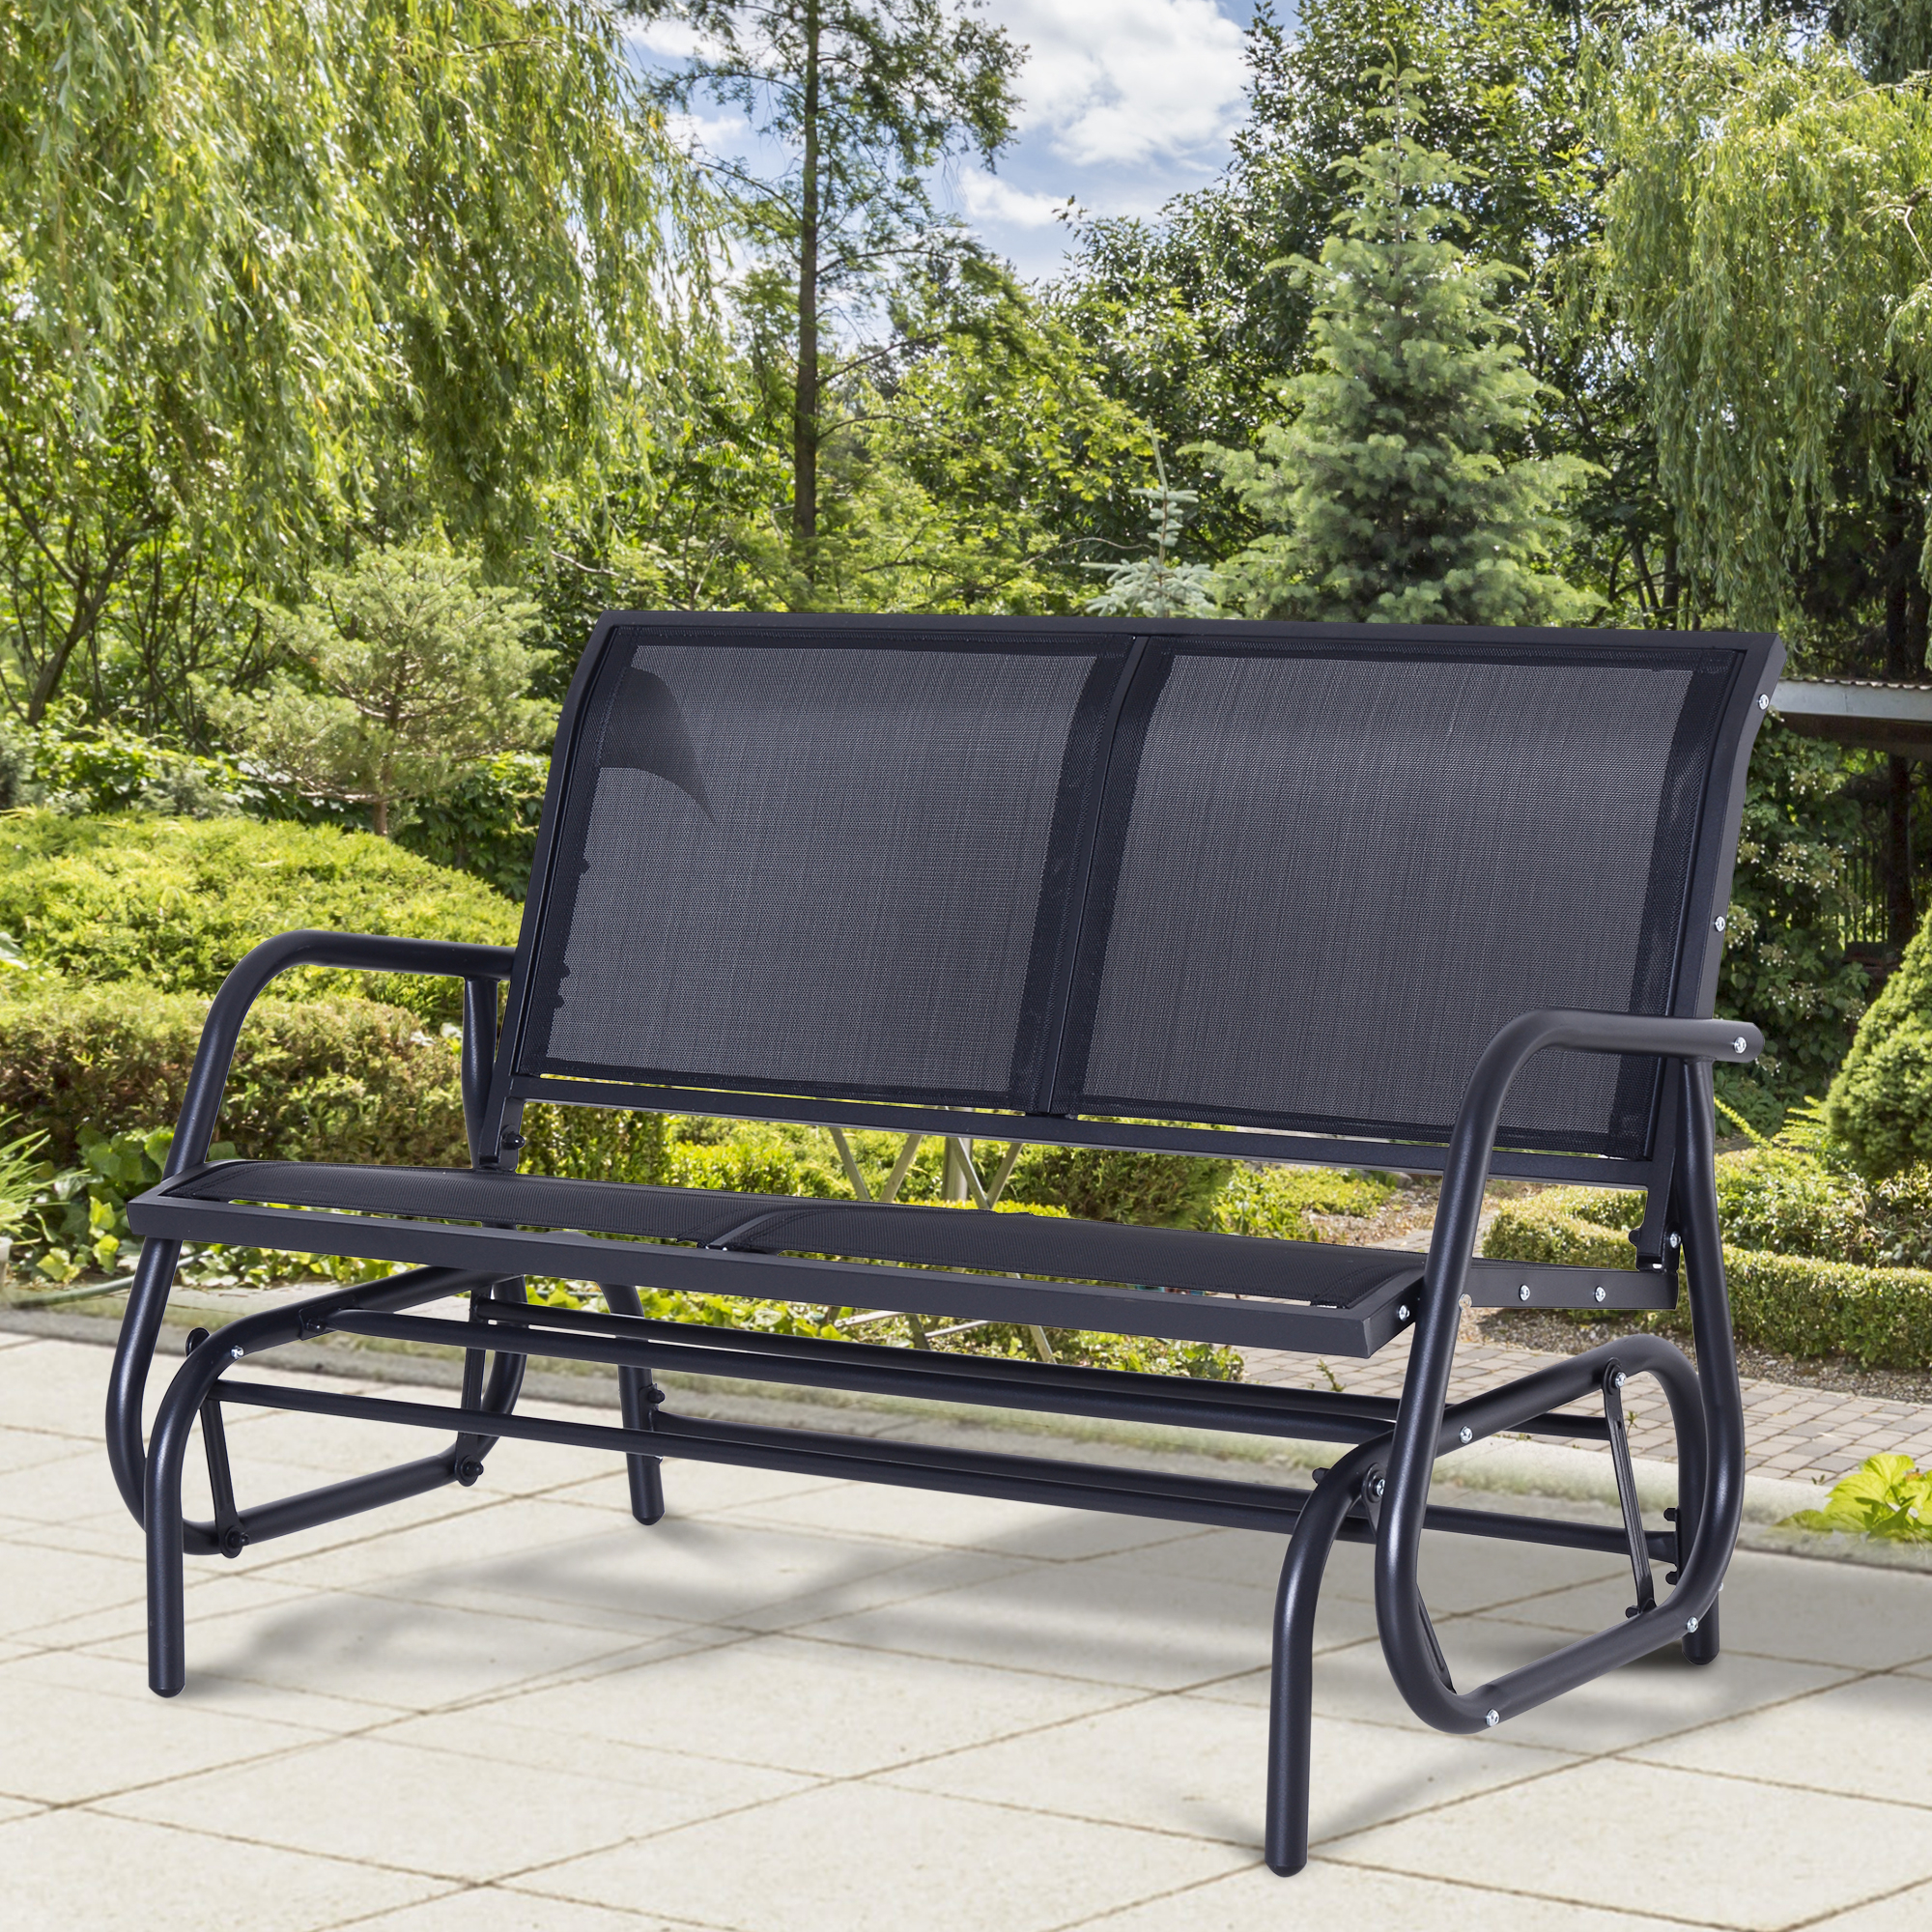 Fashionable Outsunny Steel Sling Fabric Outdoor Double Glider Rocking Throughout 1 Person Antique Black Steel Outdoor Gliders (Gallery 26 of 30)